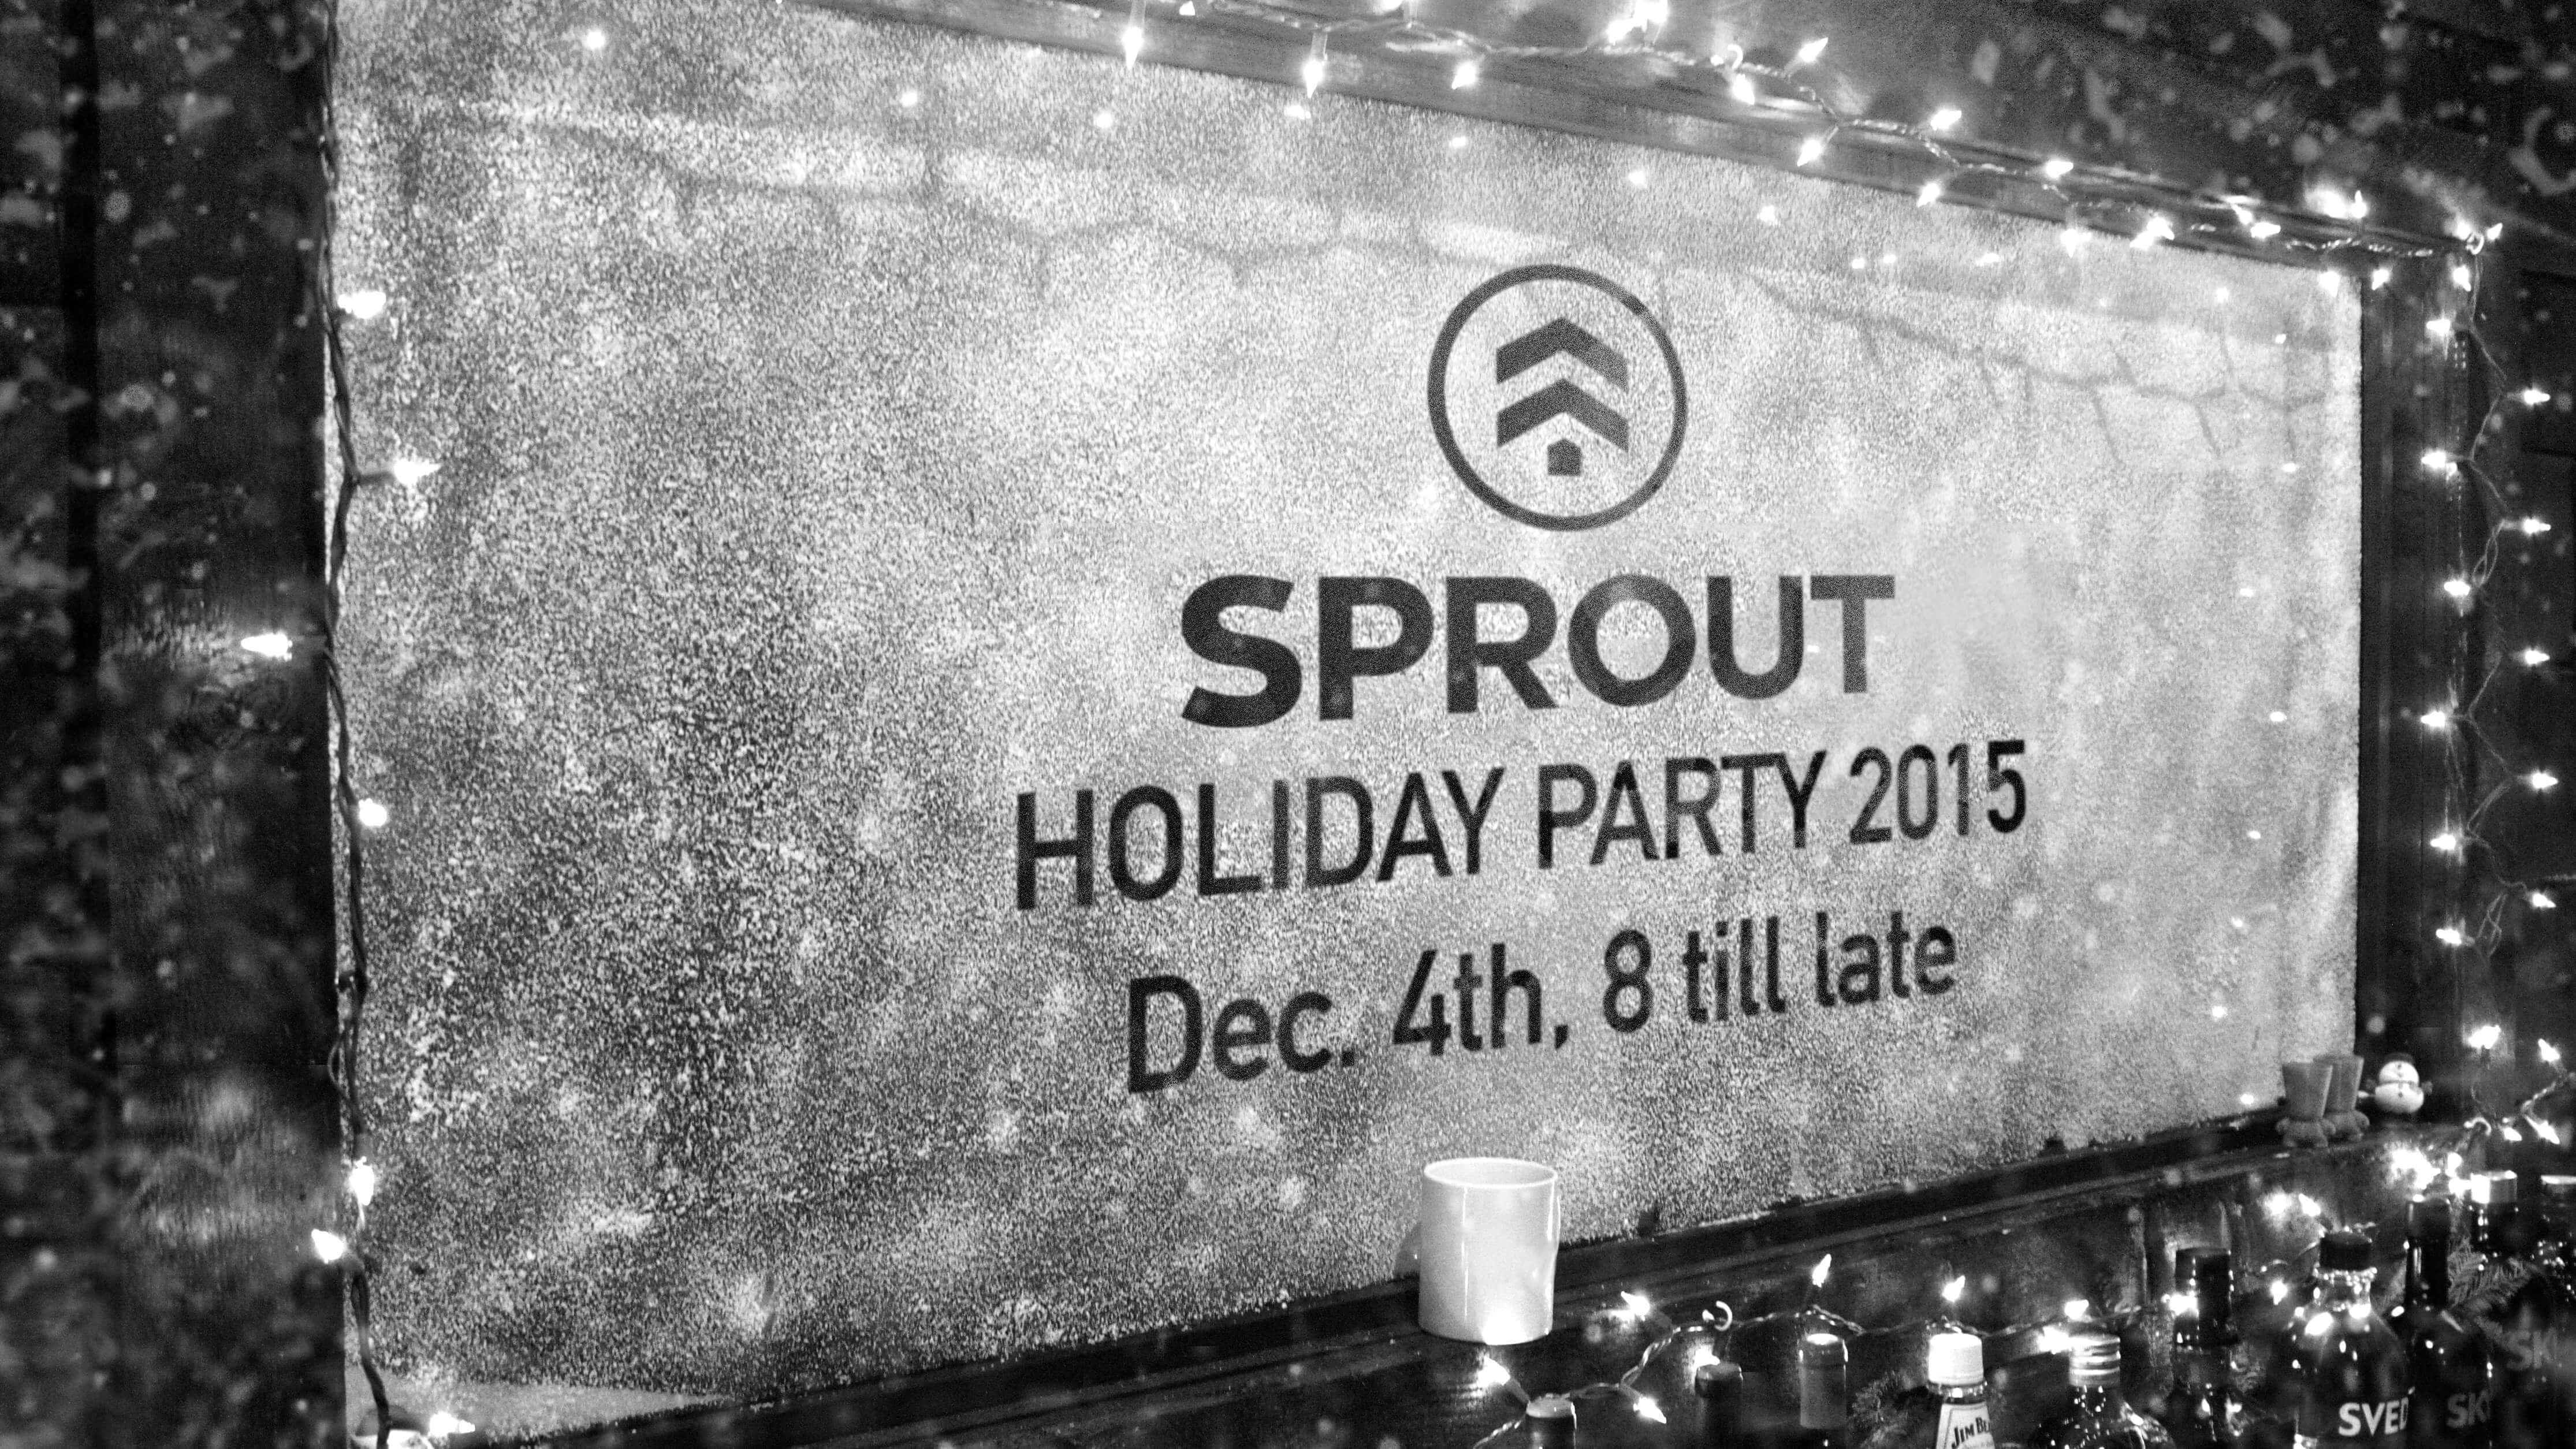 SPROUT HOLIDAY PARTY INVITE